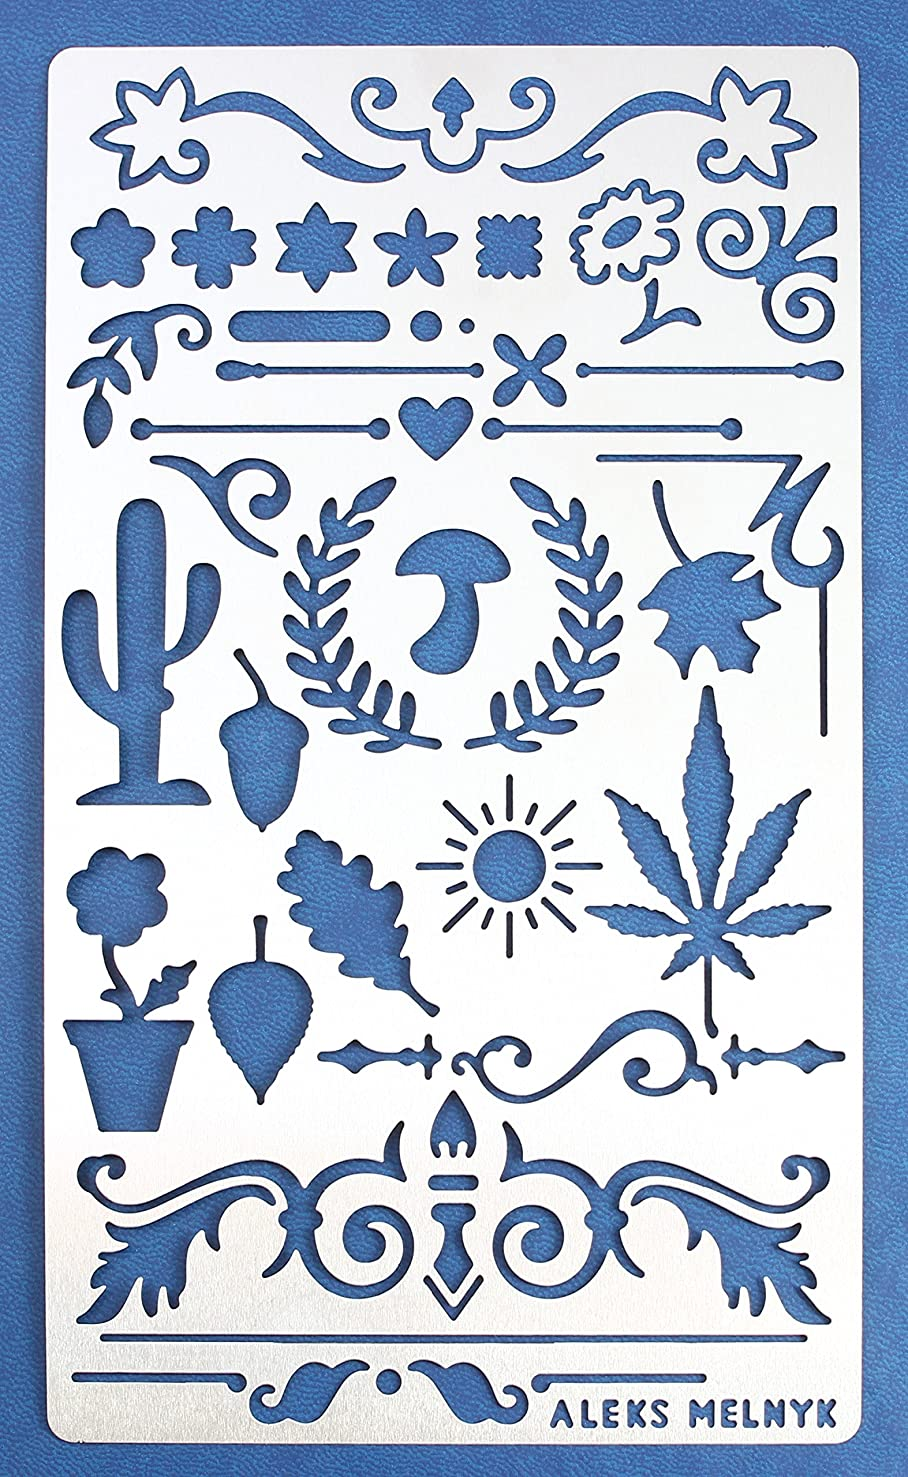 Aleks Melnyk #1 Metal Journal Stencil/Nature, Dividers, Ornament/Stainless Steel Stencil 1 PCS/Template Tool for Wood Burning, Pyrography and Engraving/Scrapbooking/Crafting/DIY